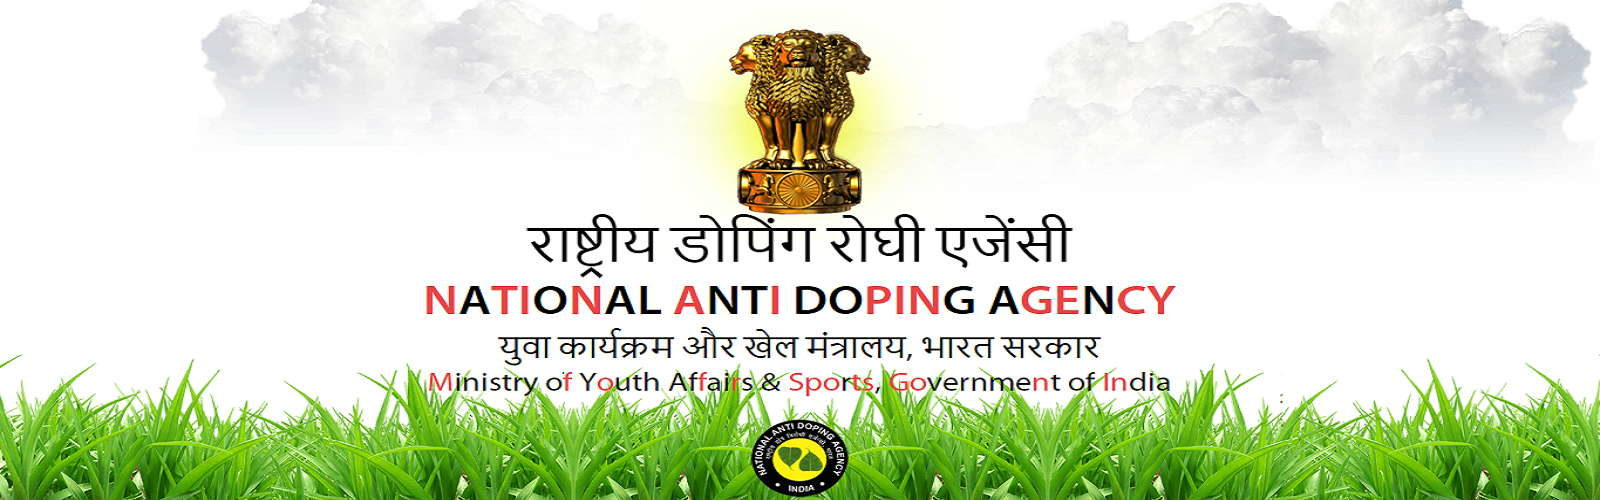 National Anti Doping Agency (NADA)